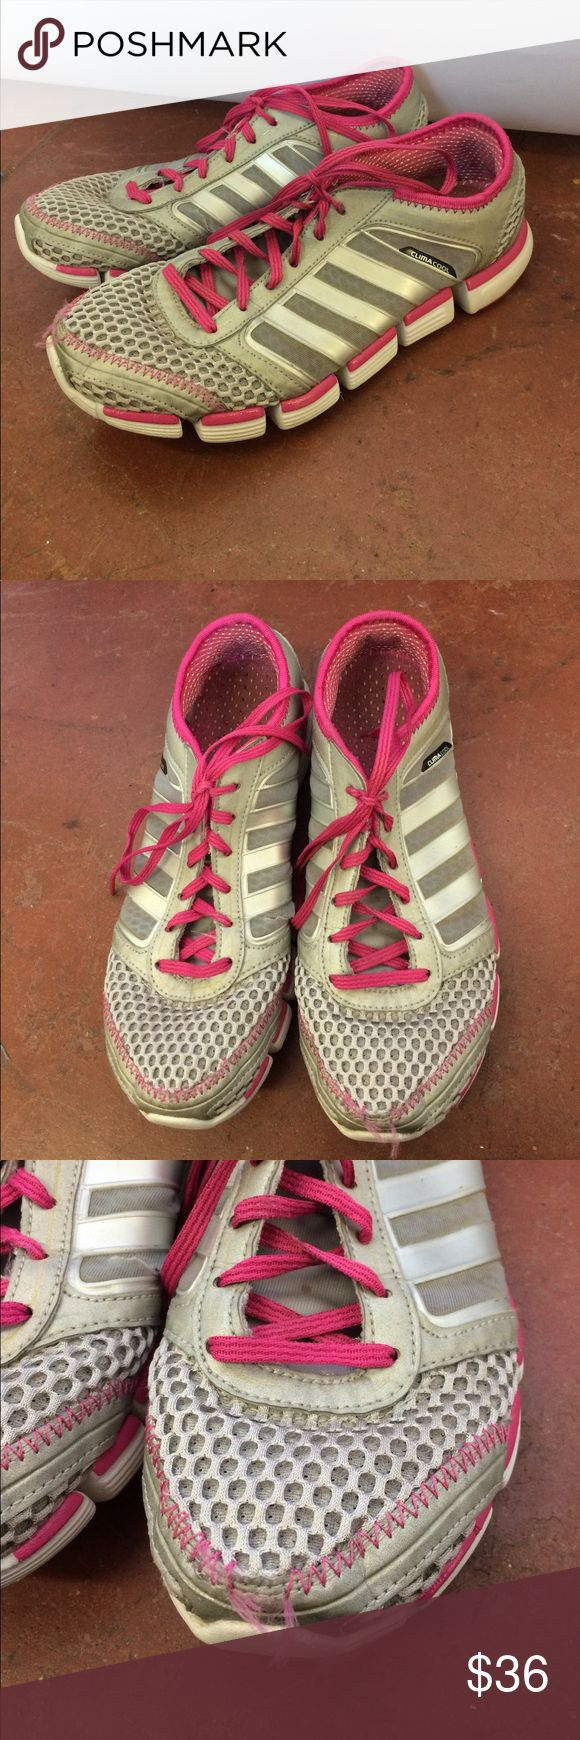 Adidas Climacool Sneakers Pink and gray sneakers Size 9 Pre-owned Some wear as shown in pictures  P273 adidas Shoes Athletic Shoes